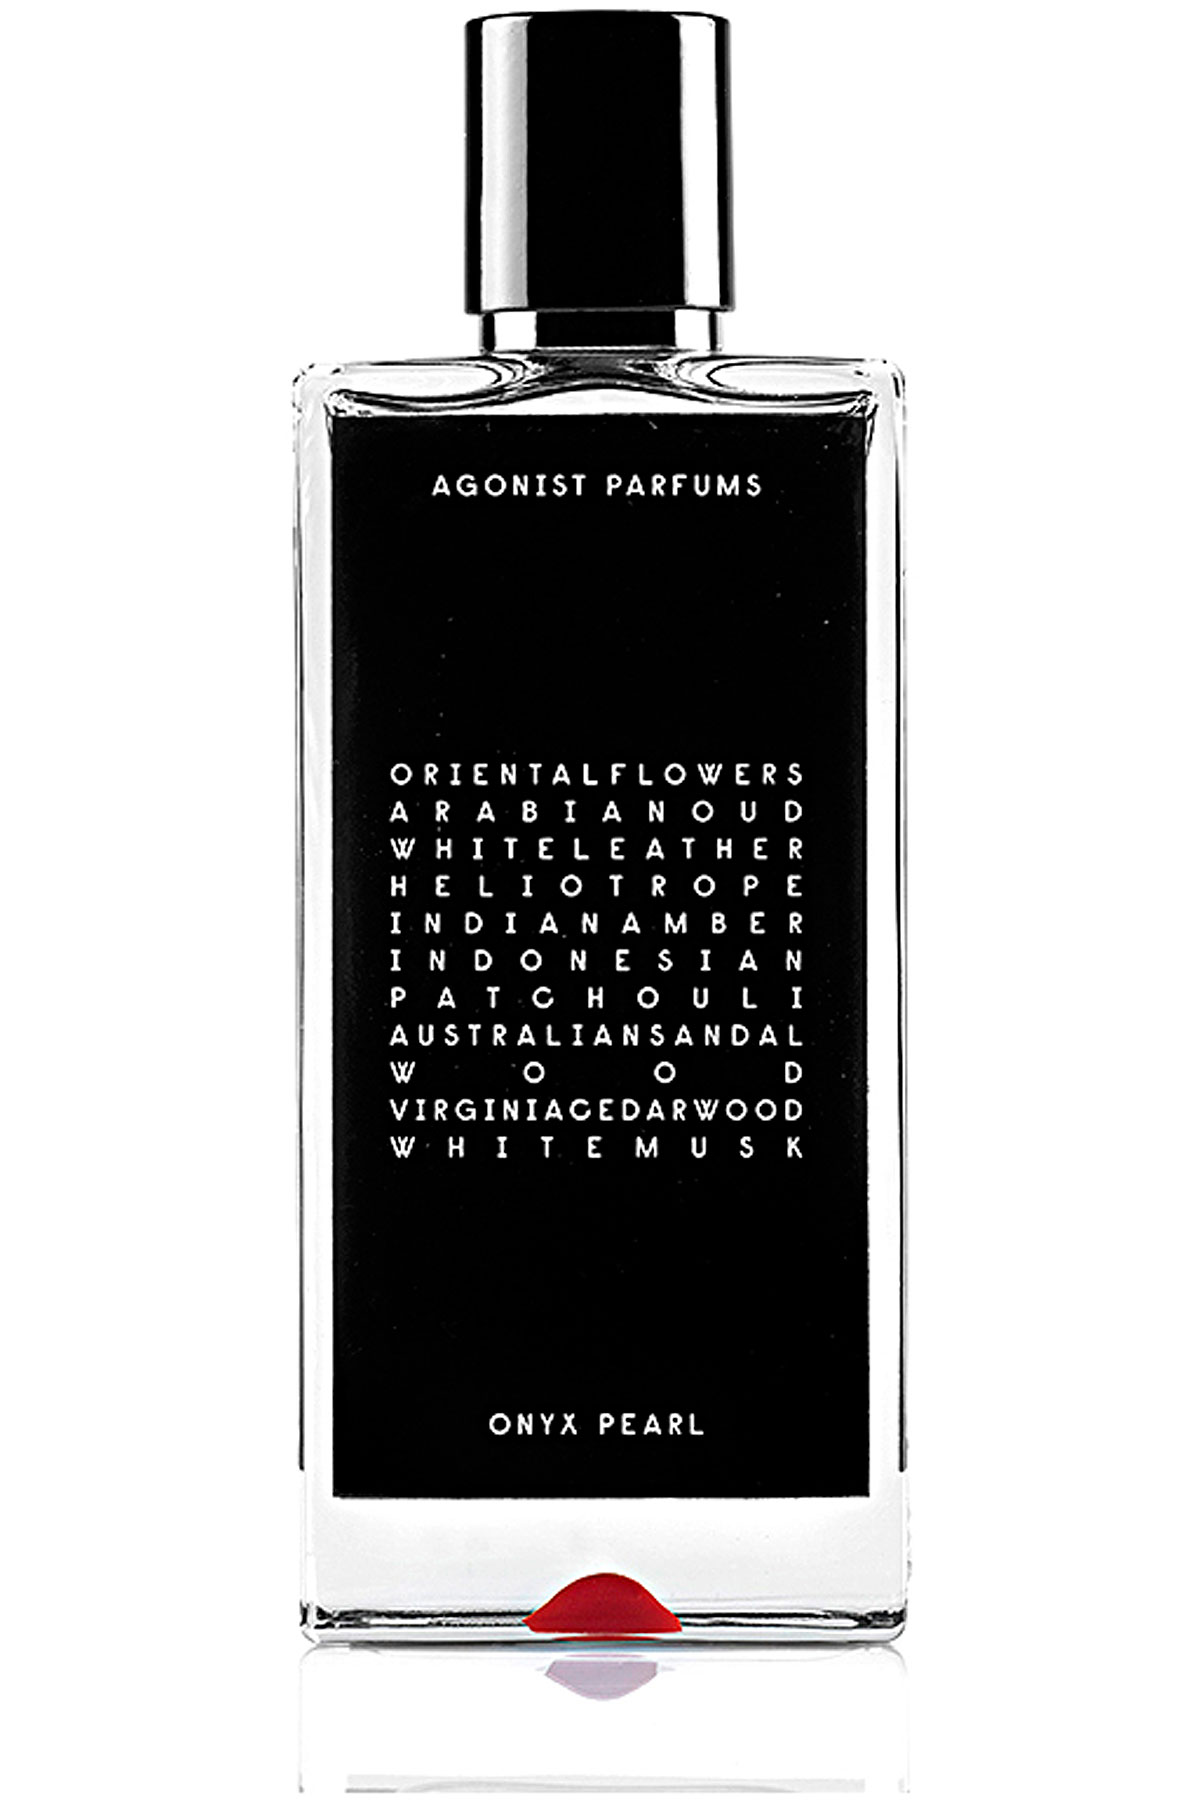 Agonist Fragrances for Men, Onyx Pearl - Eau De Parfum - 50 Ml, 2019, 50 ml